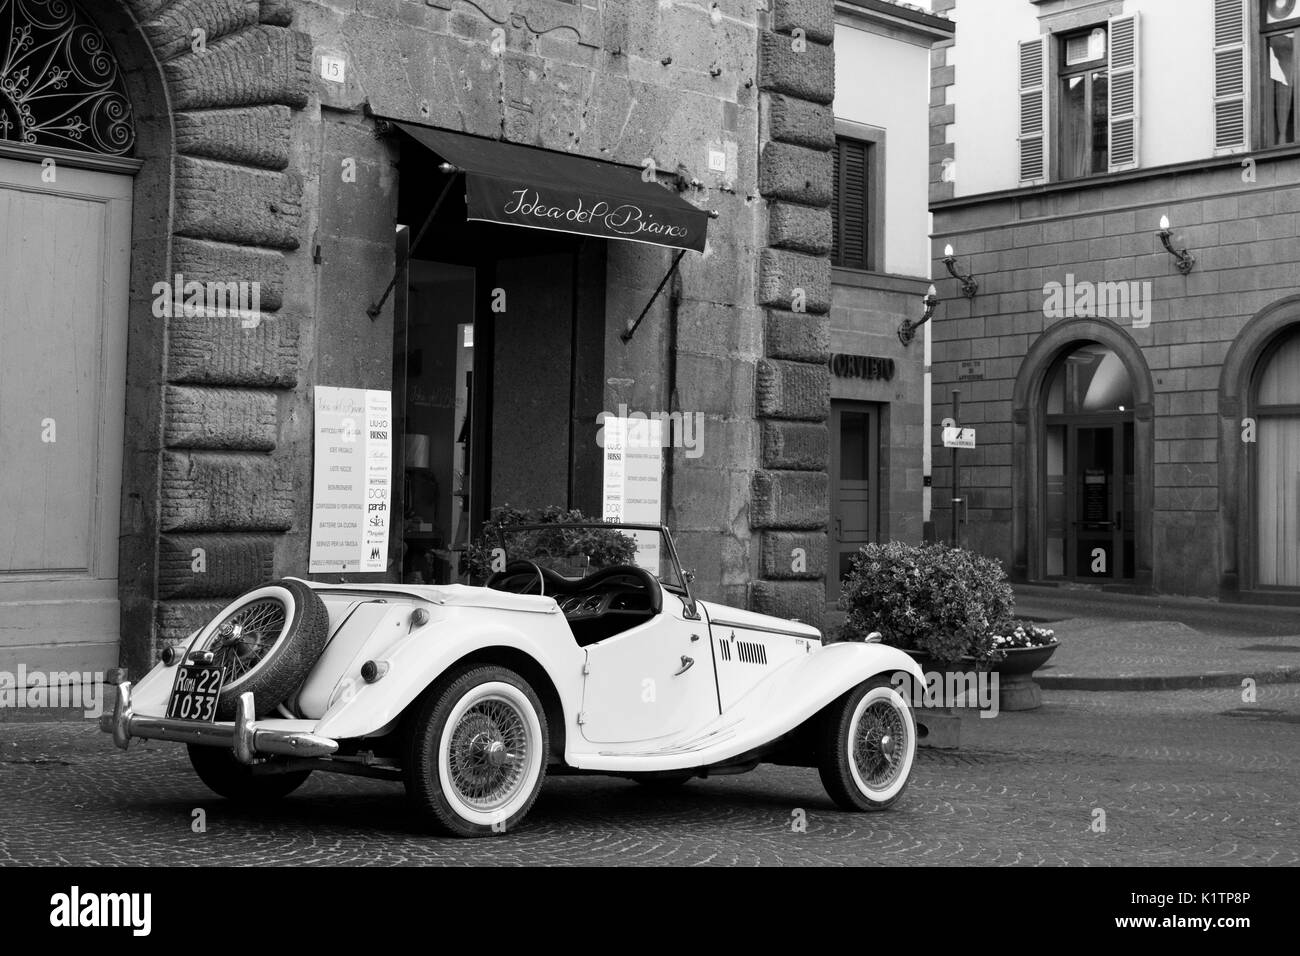 Vintage white car parked in front of a shop, at a public square in Orvieto, shot in Black and White. Car reflects the old character of Orvieto. - Stock Image